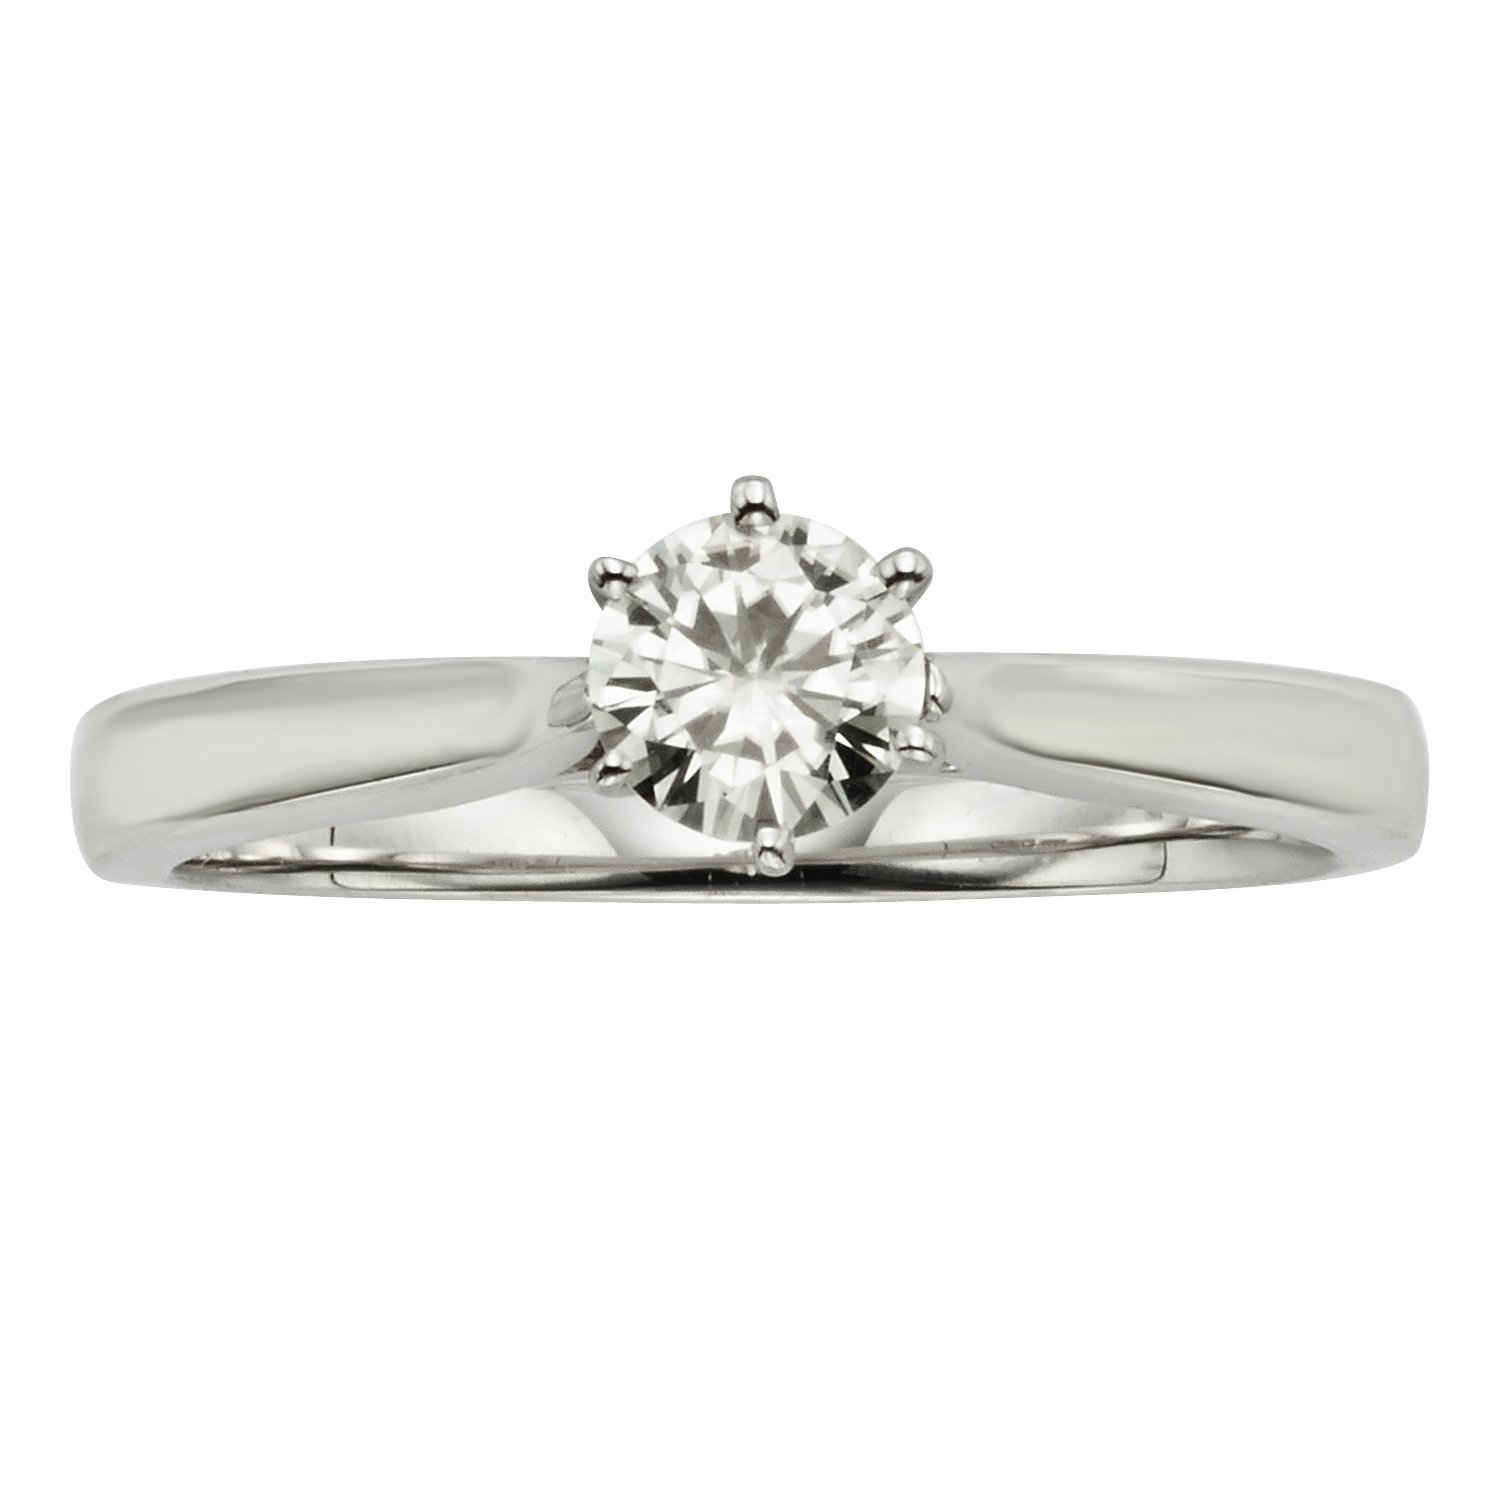 Forever Classic Round 4.5mm Moissanite Ring, 0.33ct DEW - size 7 by Charles & Colvard